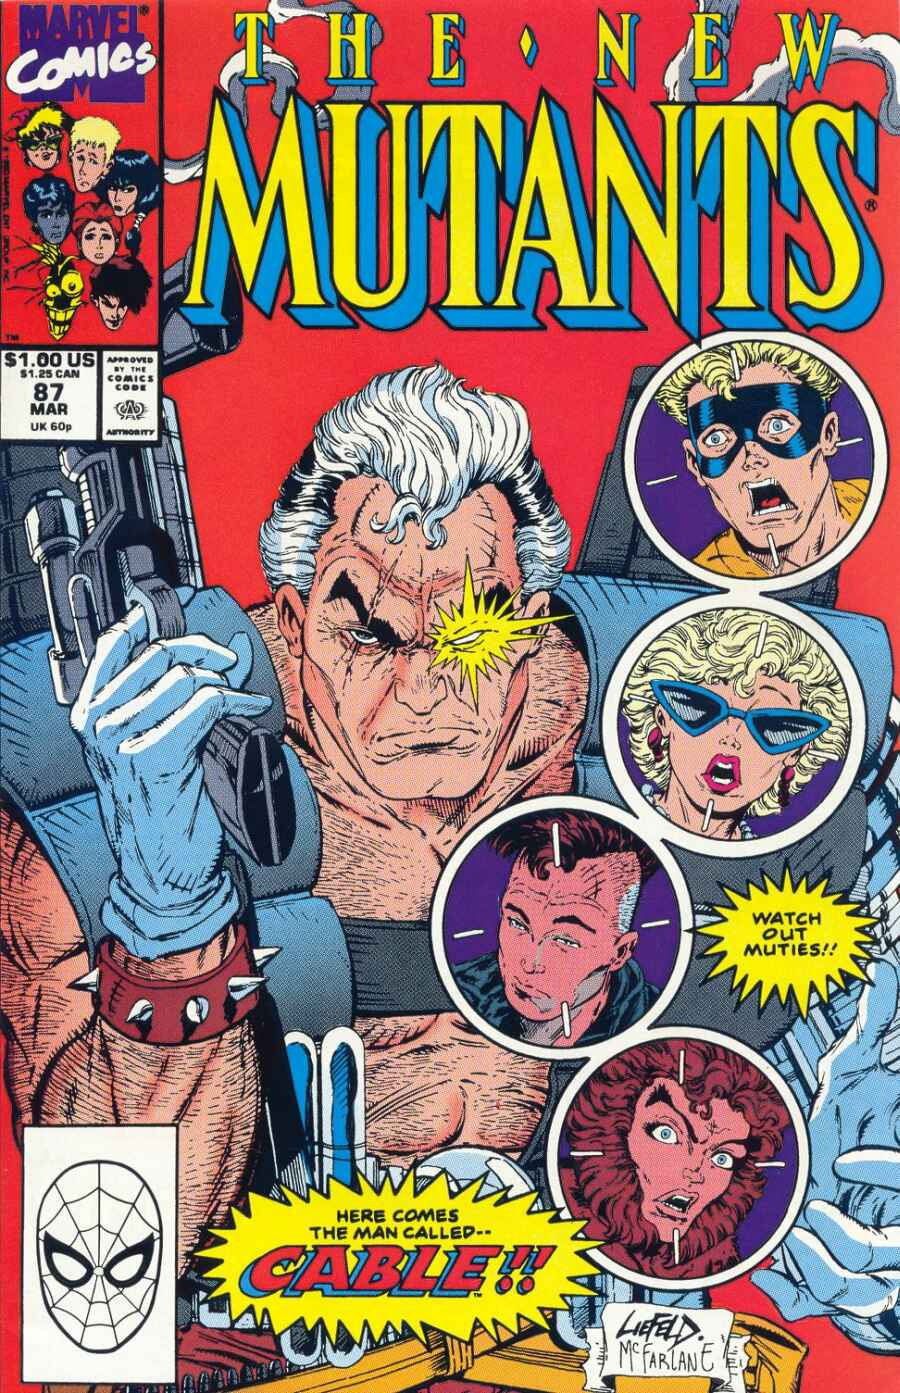 Comic Books New Mutants | The Guy Blog